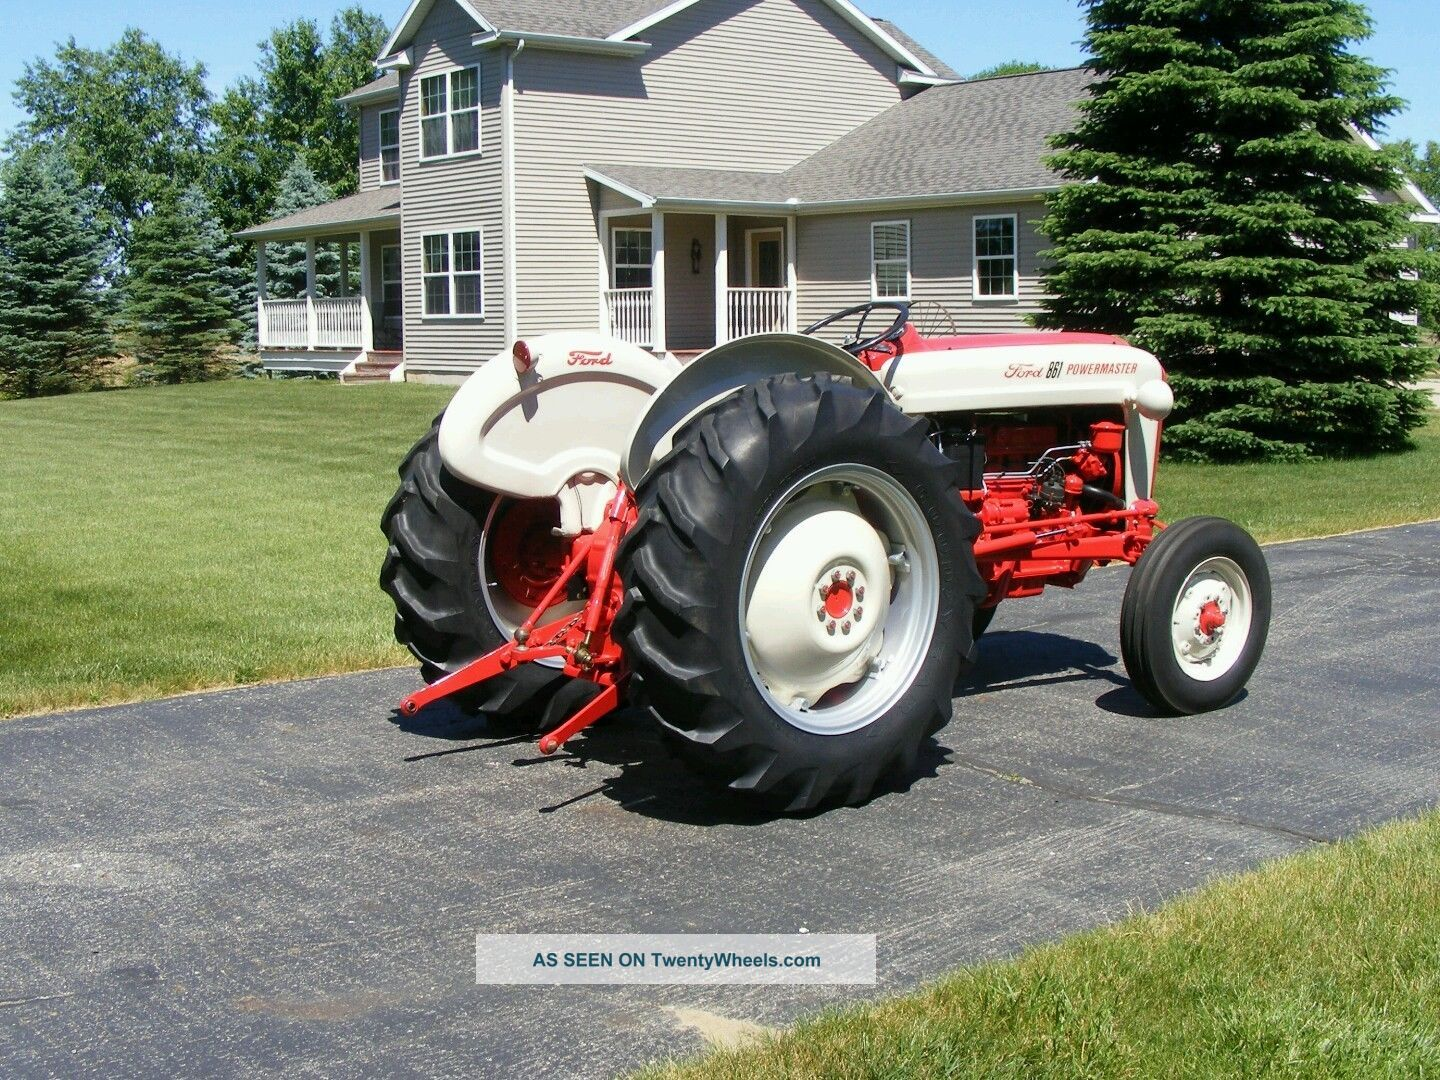 Wiring Diagram 1957 801 Ford Tractor Data Diagrams 1949 2n 1960 641 Pictures To Pin On Pinterest Pinsdaddy Alternator 8n